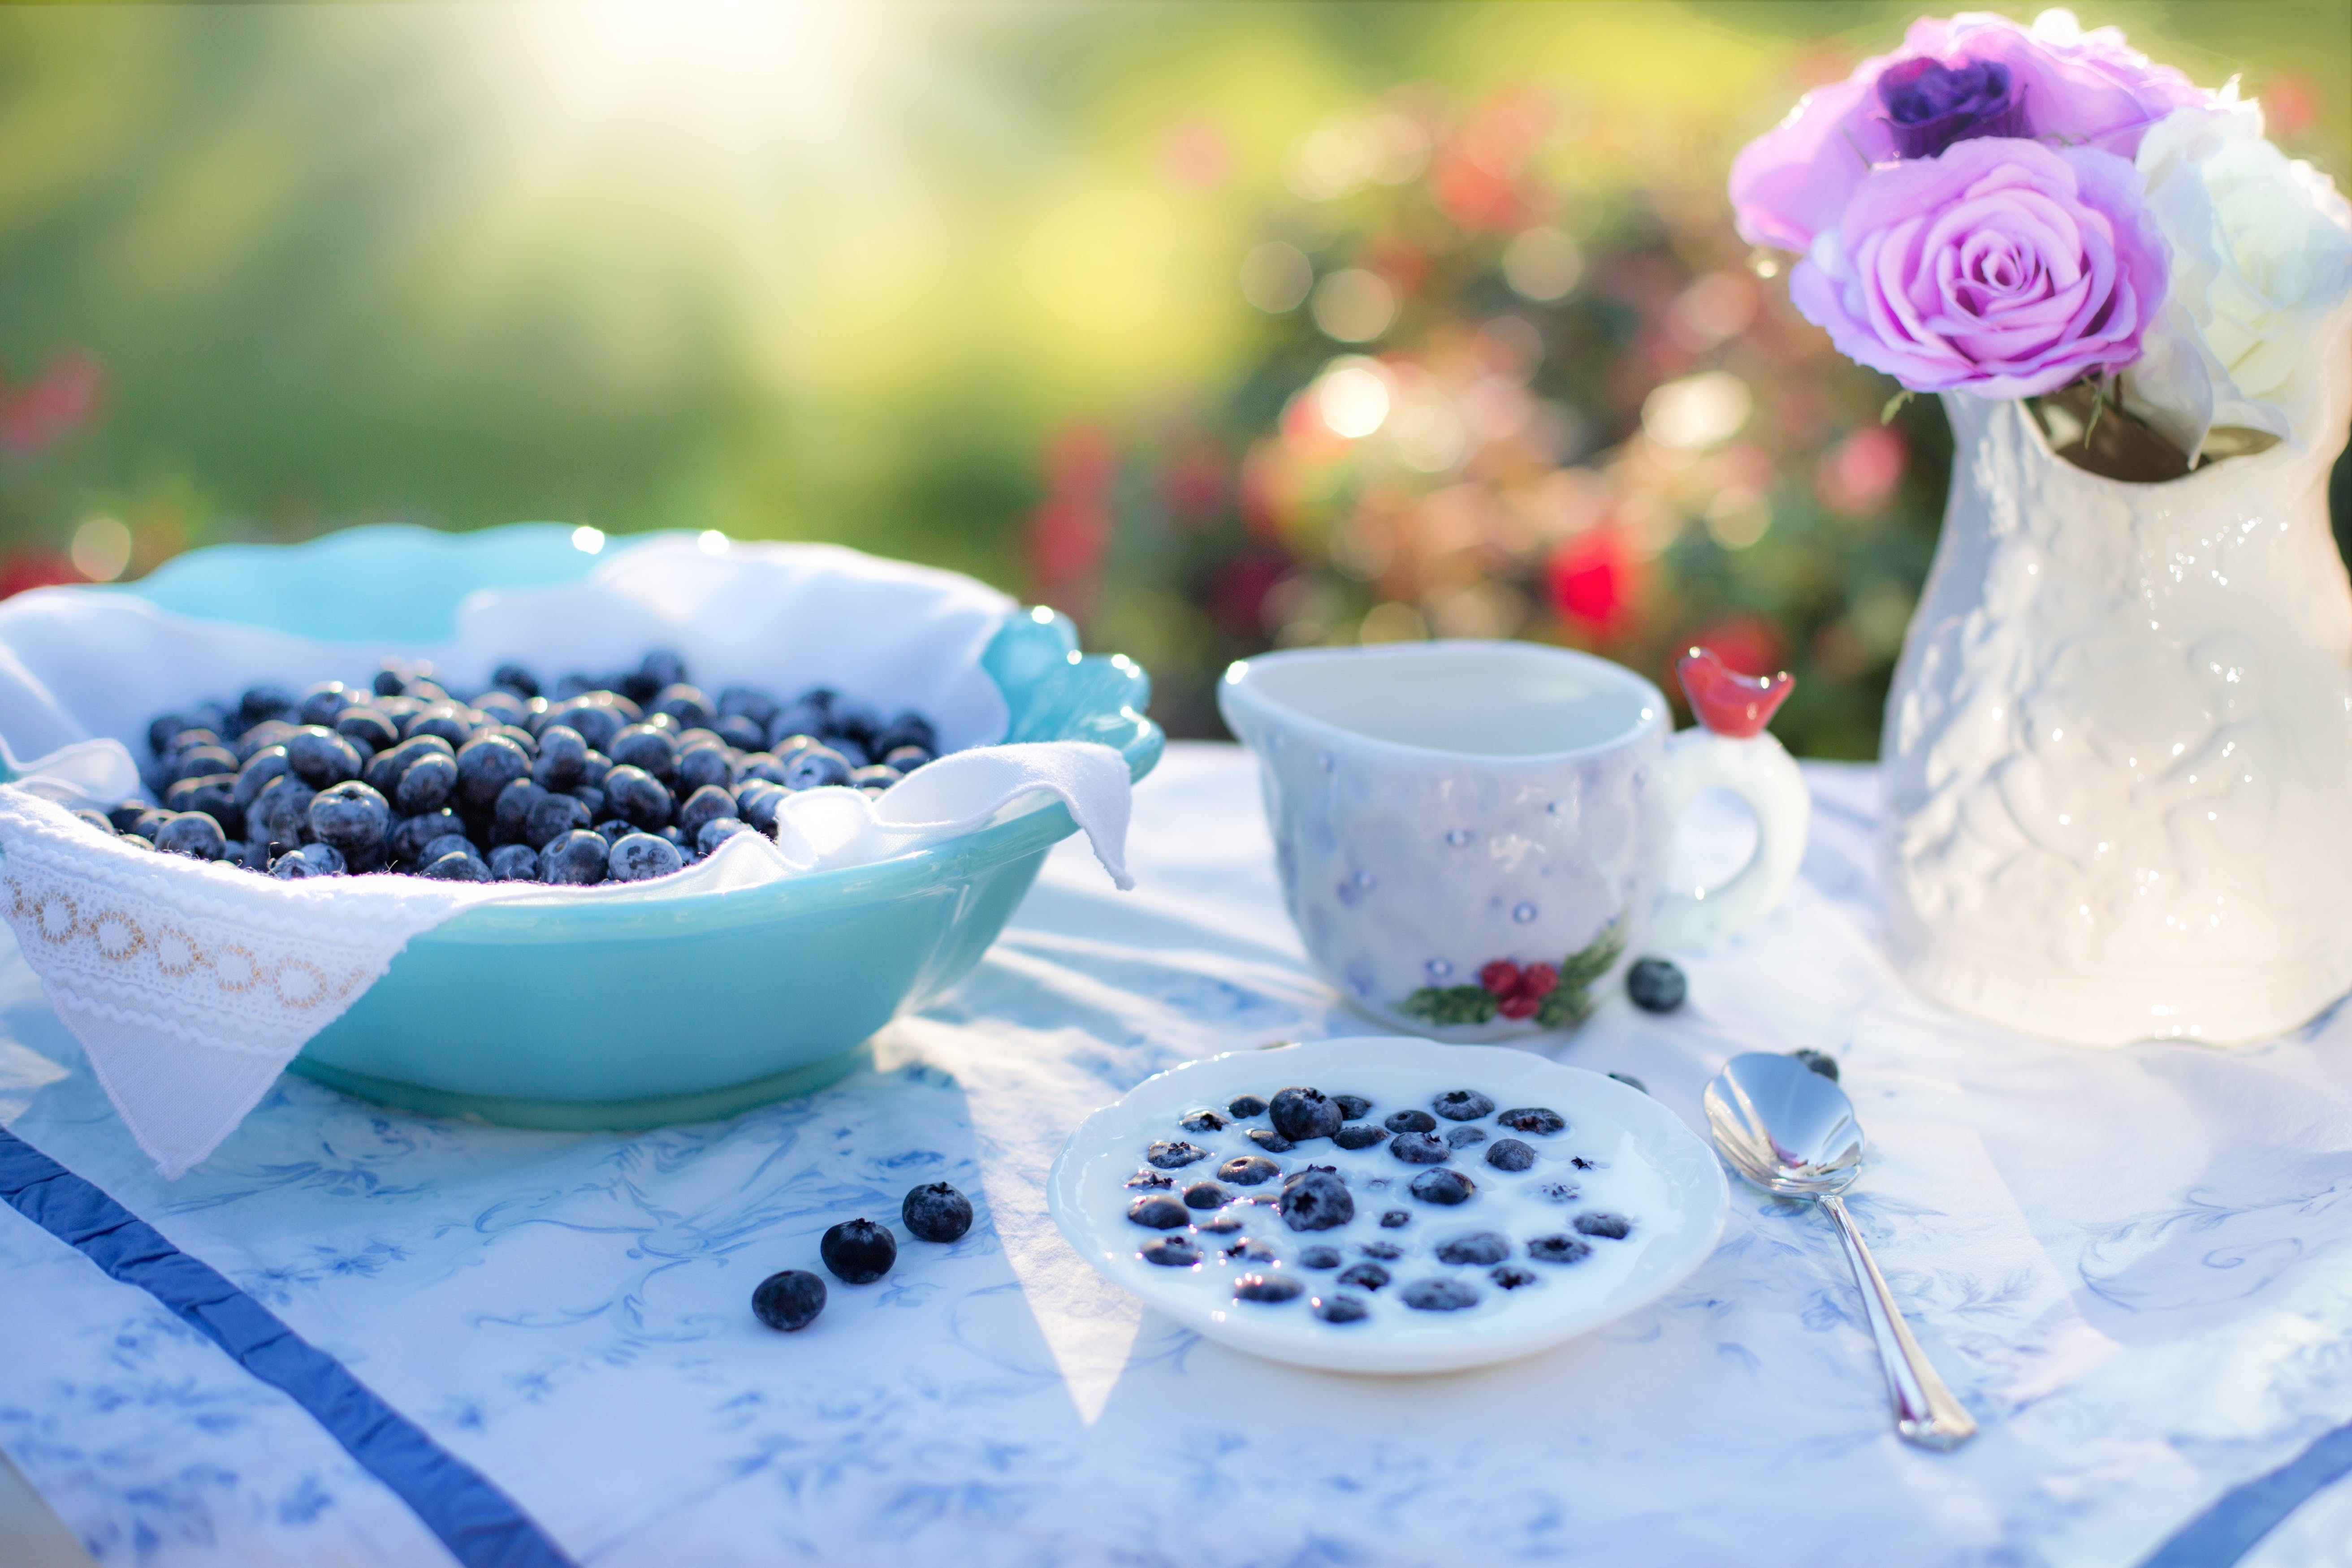 Bowl of Blue Berries on a Table in a Garden on a Sunny Day